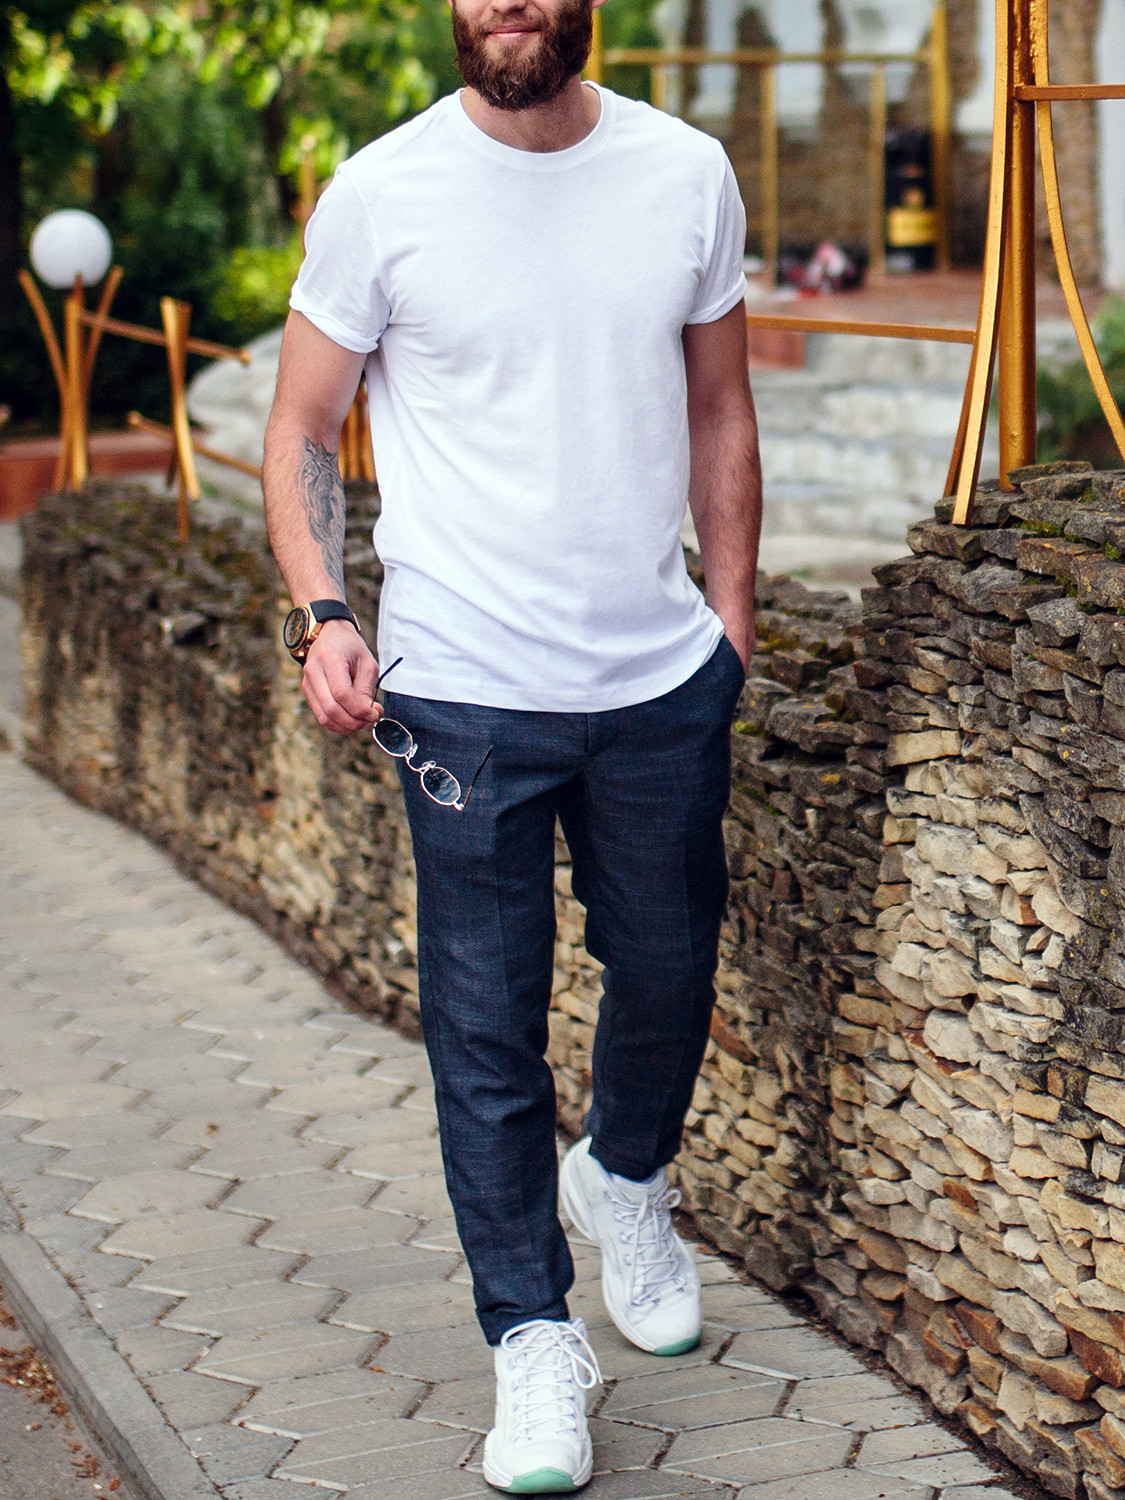 Men's outfit idea for 2021 with white crew neck t-shirt, navy plain dress pants, white everyday sneakers. Suitable for spring and fall.